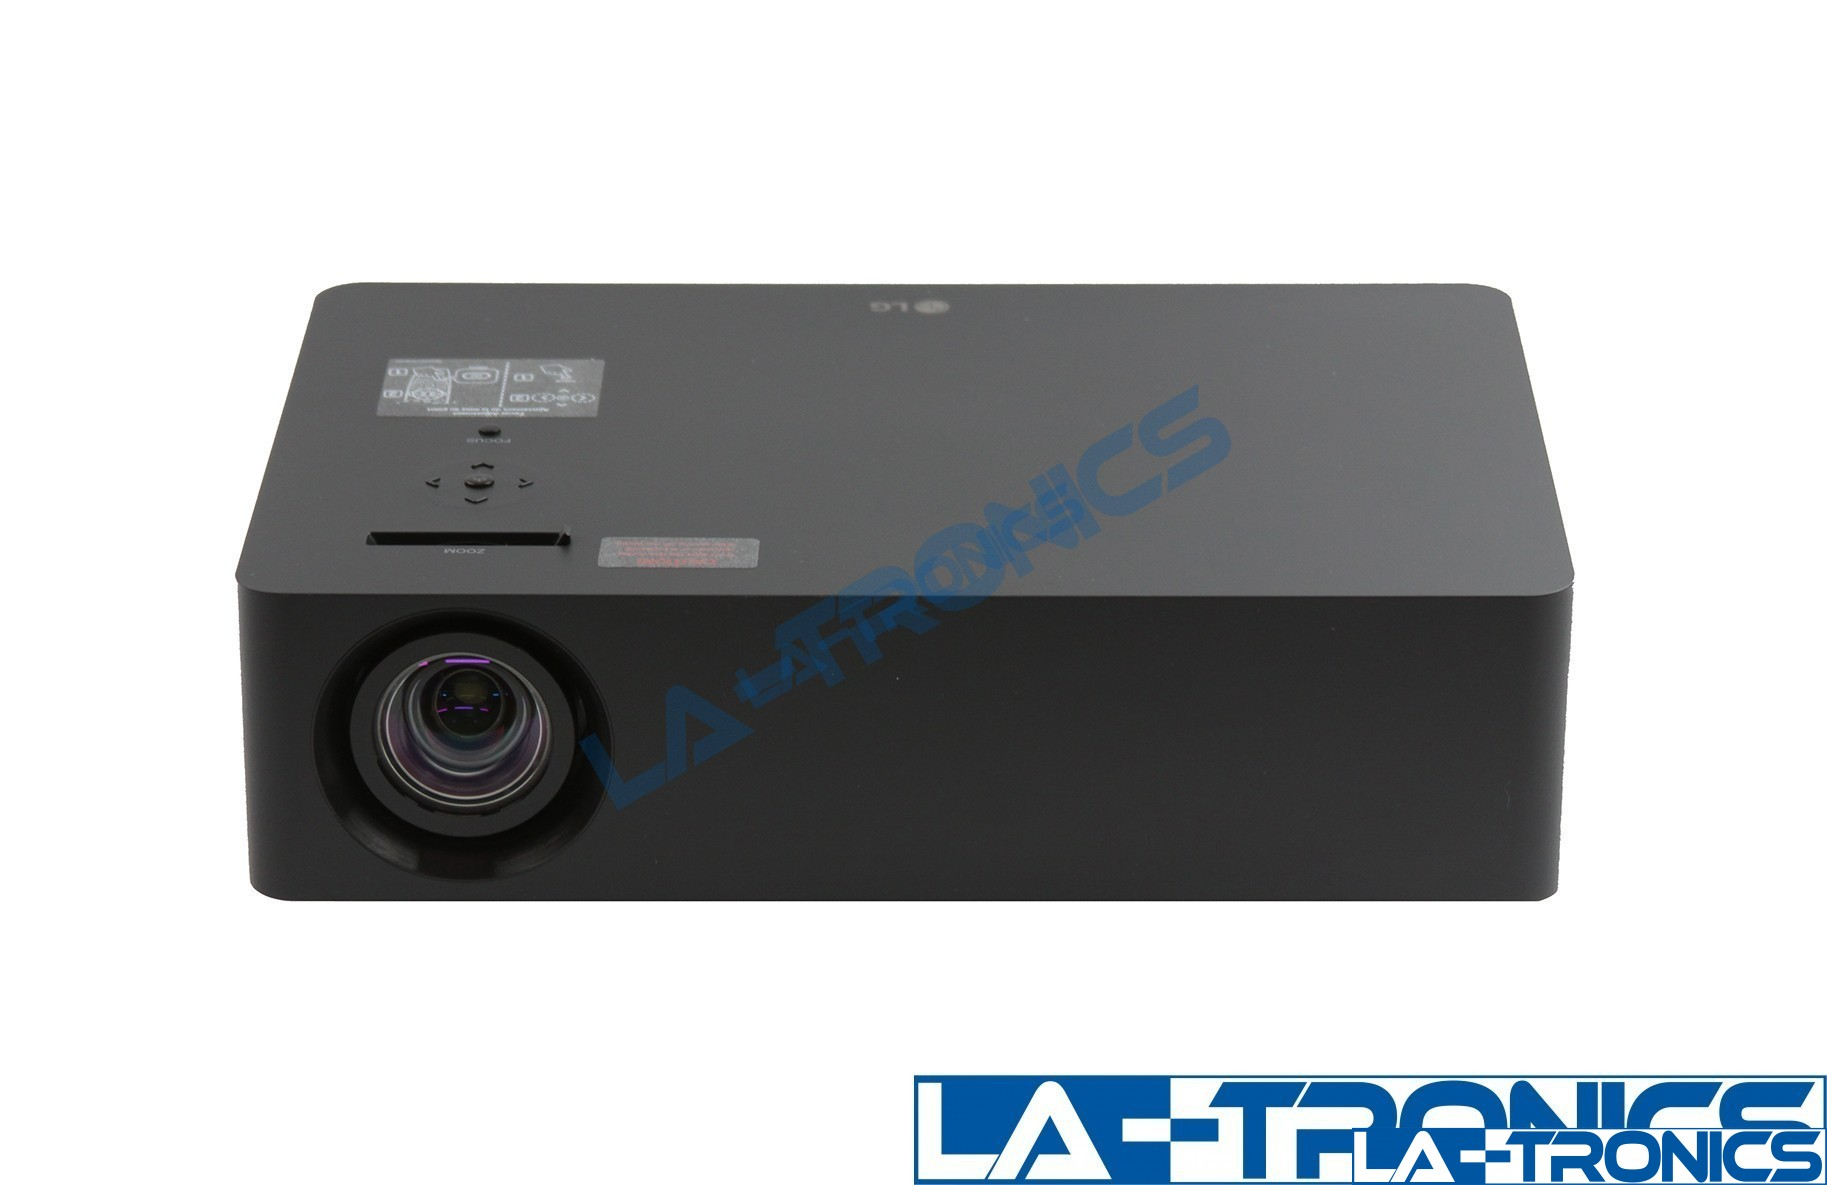 NEW LG CineBeam HU70LA HDR XPR 4K UHD DLP Home Theater Projector